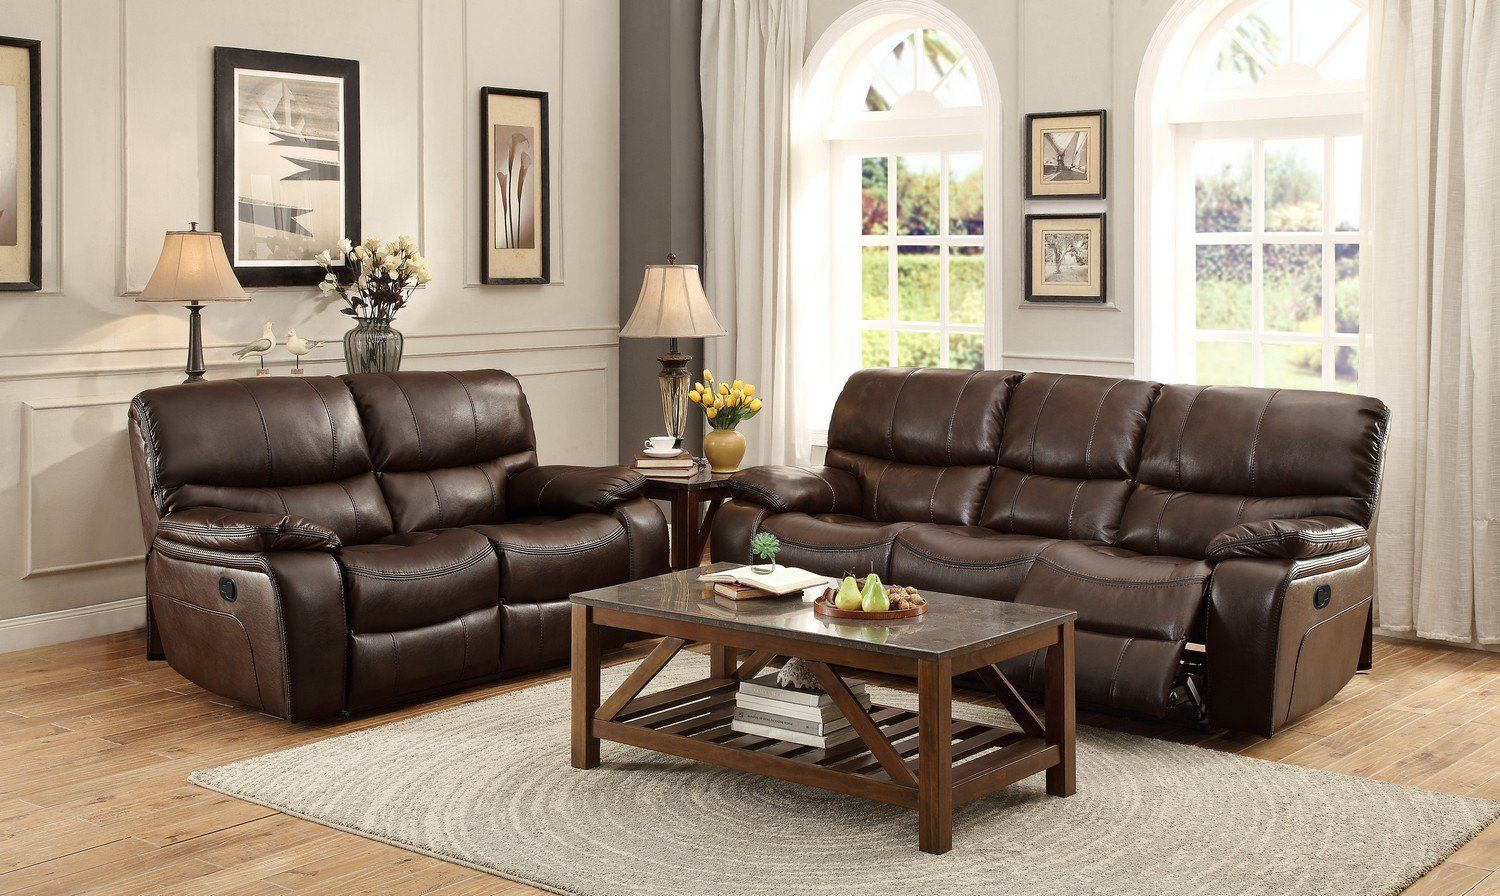 Pecos 2pc Dark Brown Leather Match Double Reclining Sofa Loveseat Set Leather Sofa Living Room Brown Living Room Decor Living Room Sets Furniture